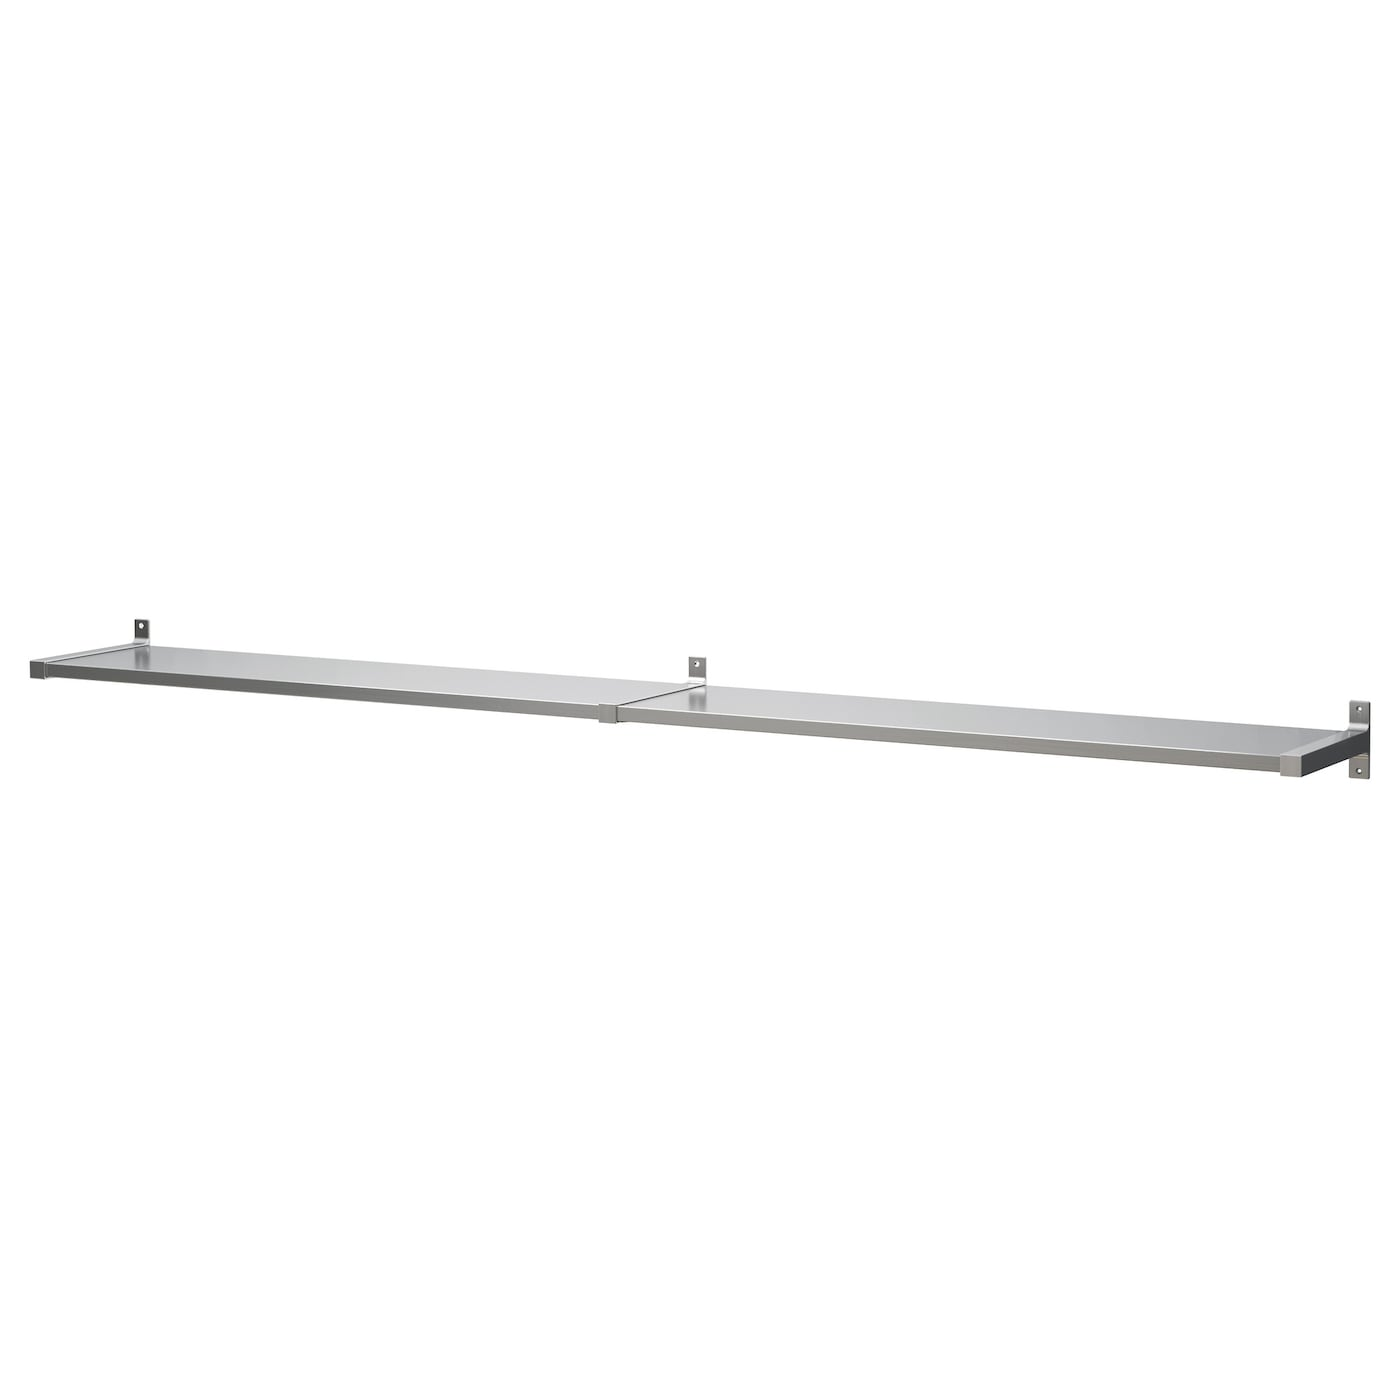 IKEA EKBY BJÄRNUM/EKBY MOSSBY wall shelf Partitioning wall inside keeps shelves in place.